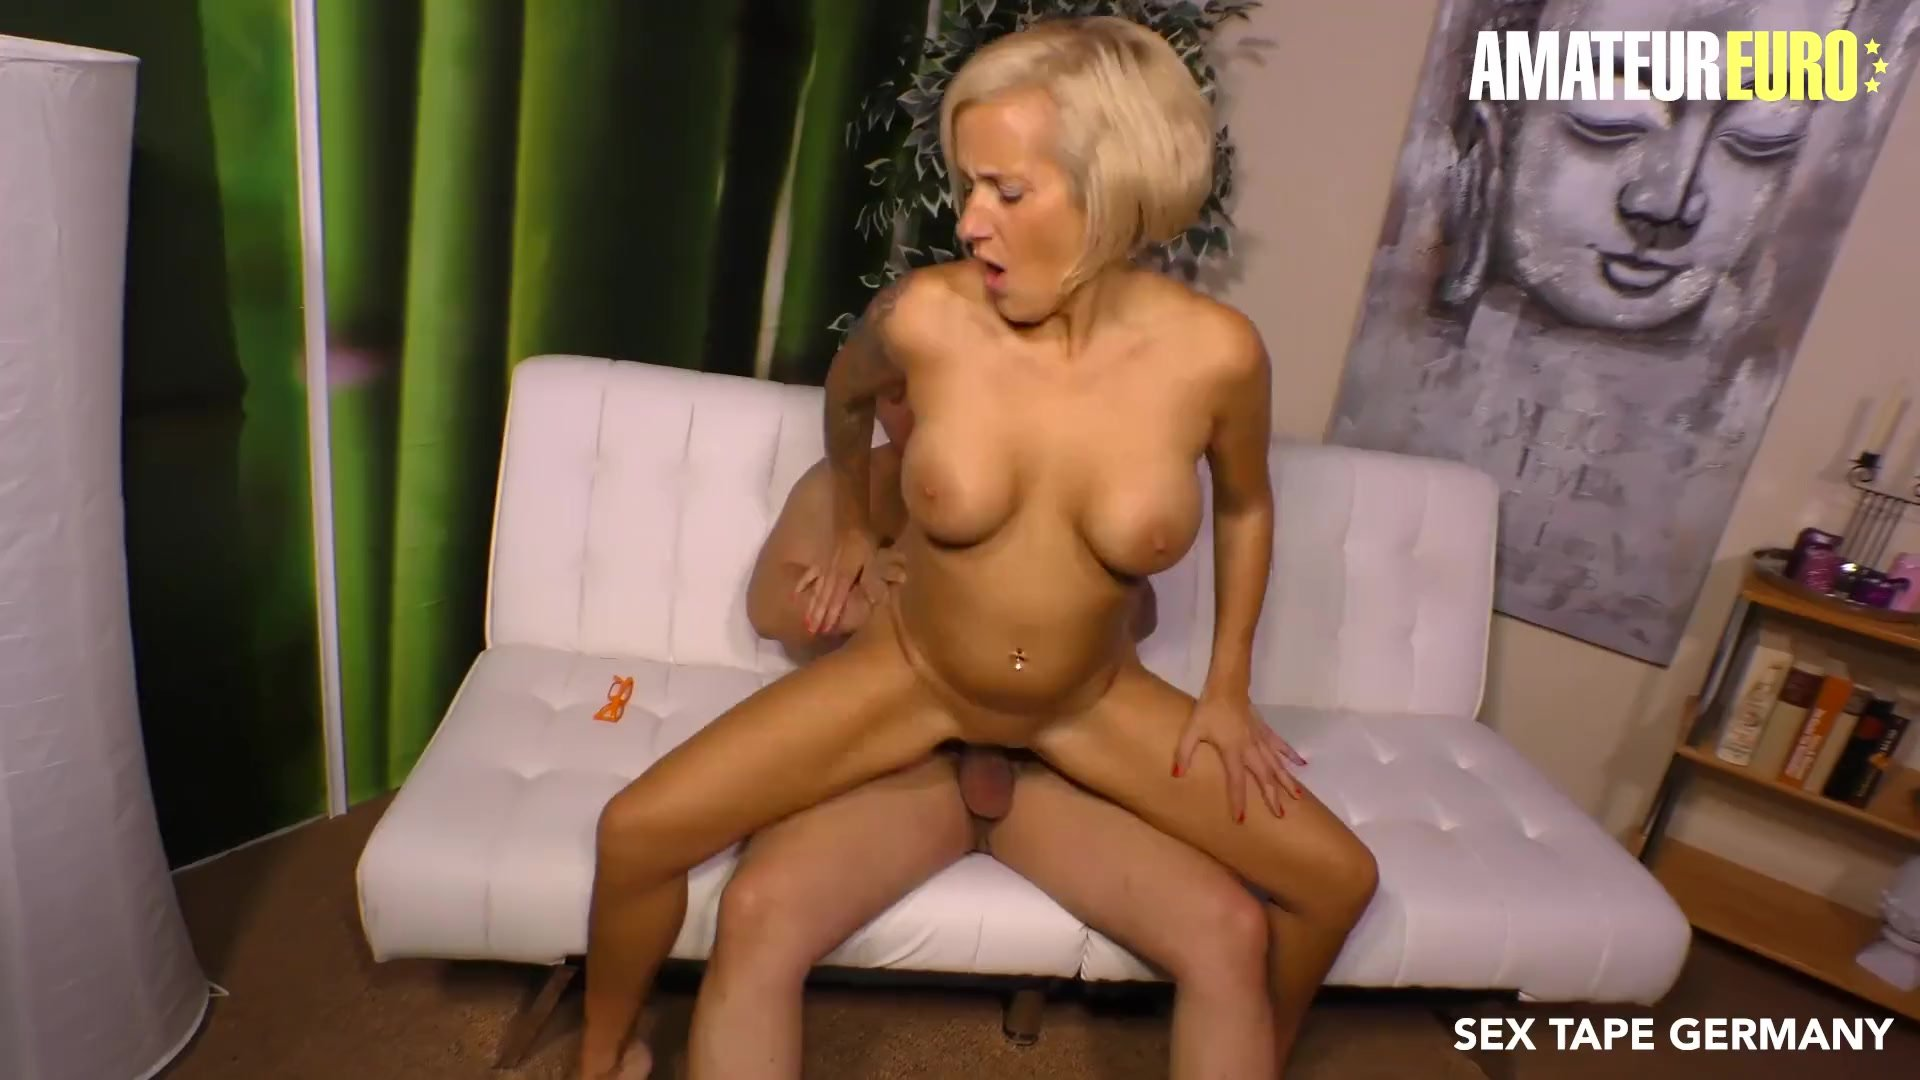 AmateurEuro - Super Hot German MILF Fucked Hard On Her First SEX TAPE